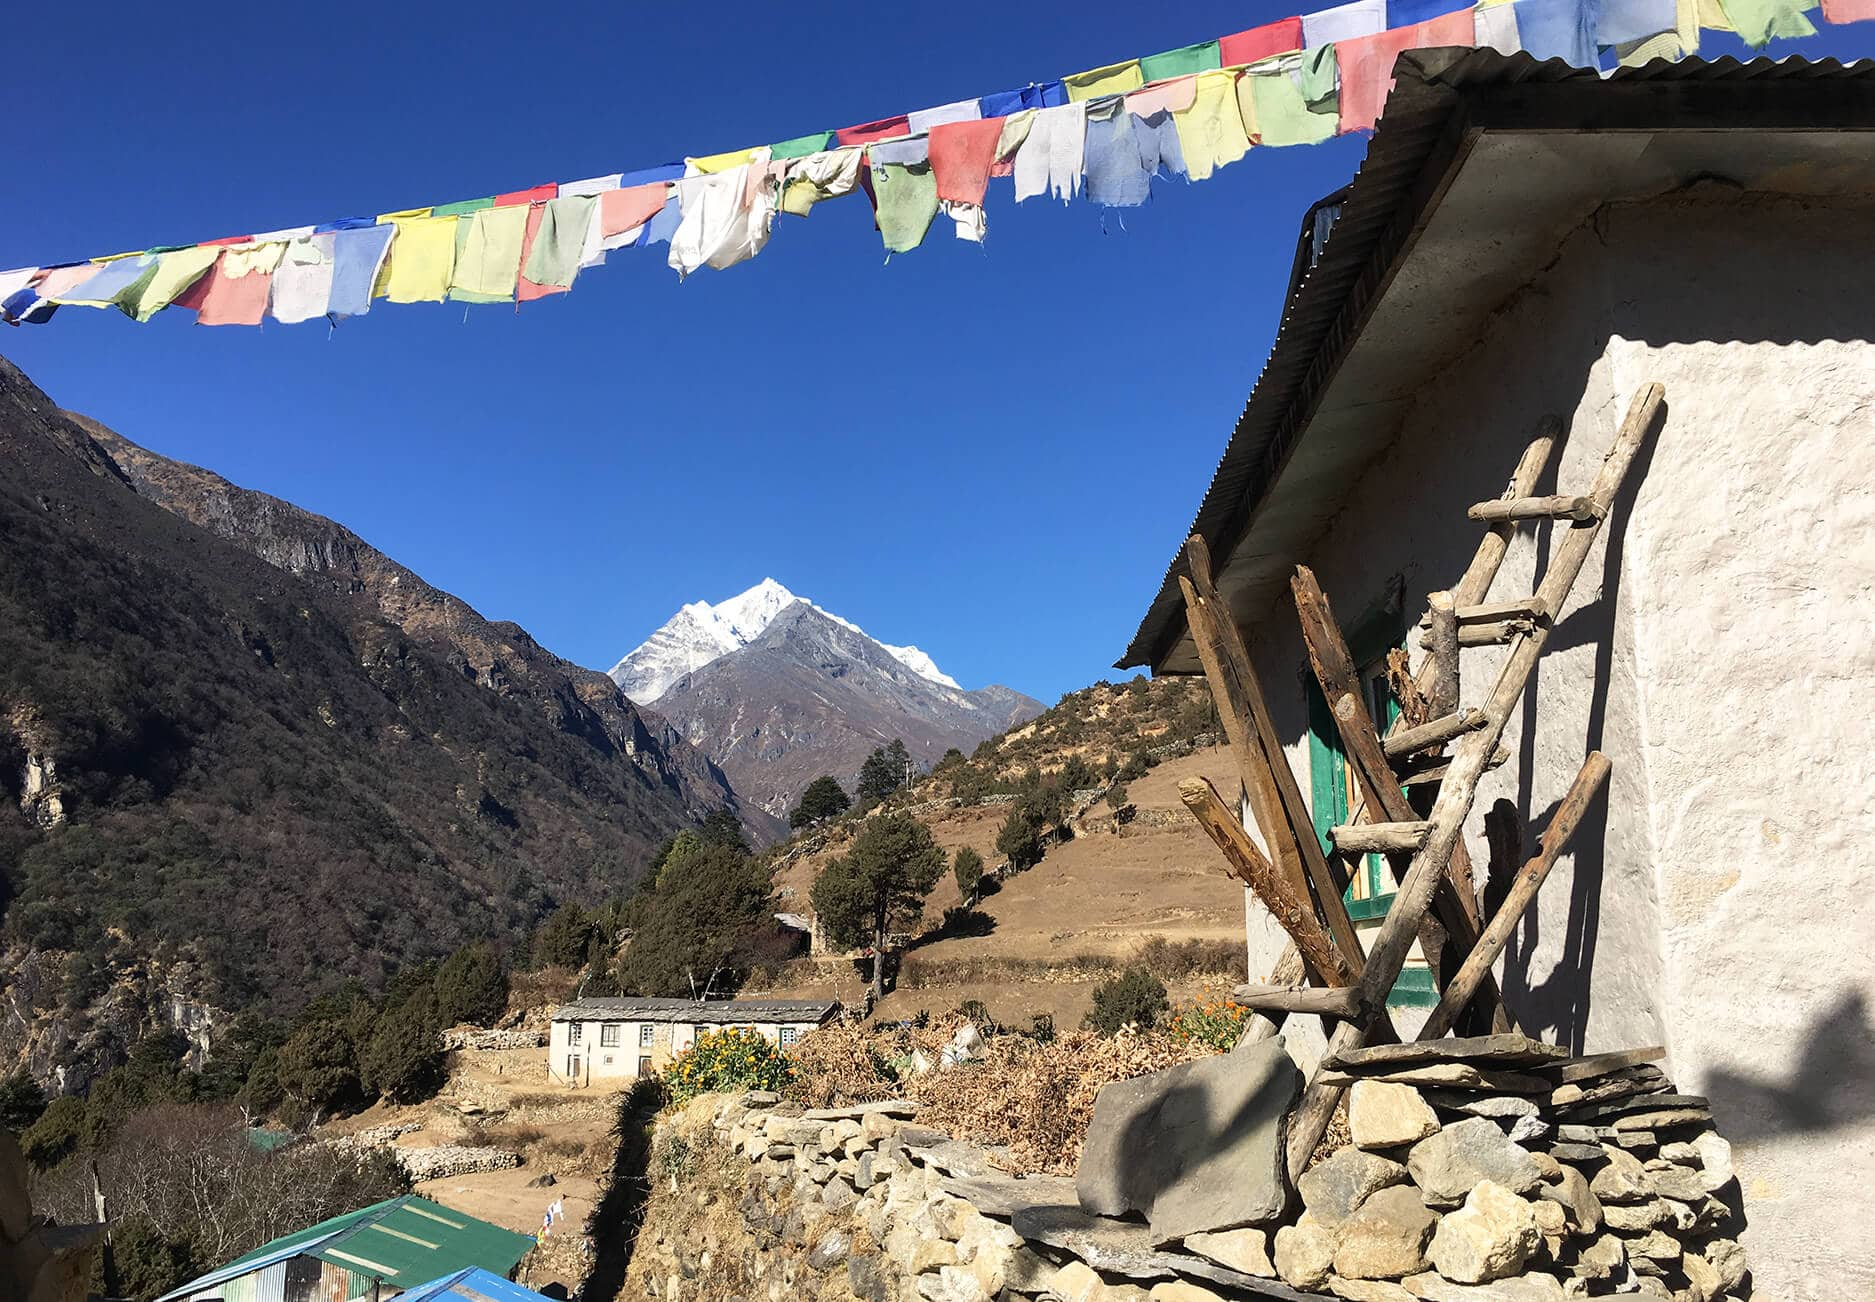 Travel bloggers reveal their favorite experiences in the world - Trekking to Everest Base Camp